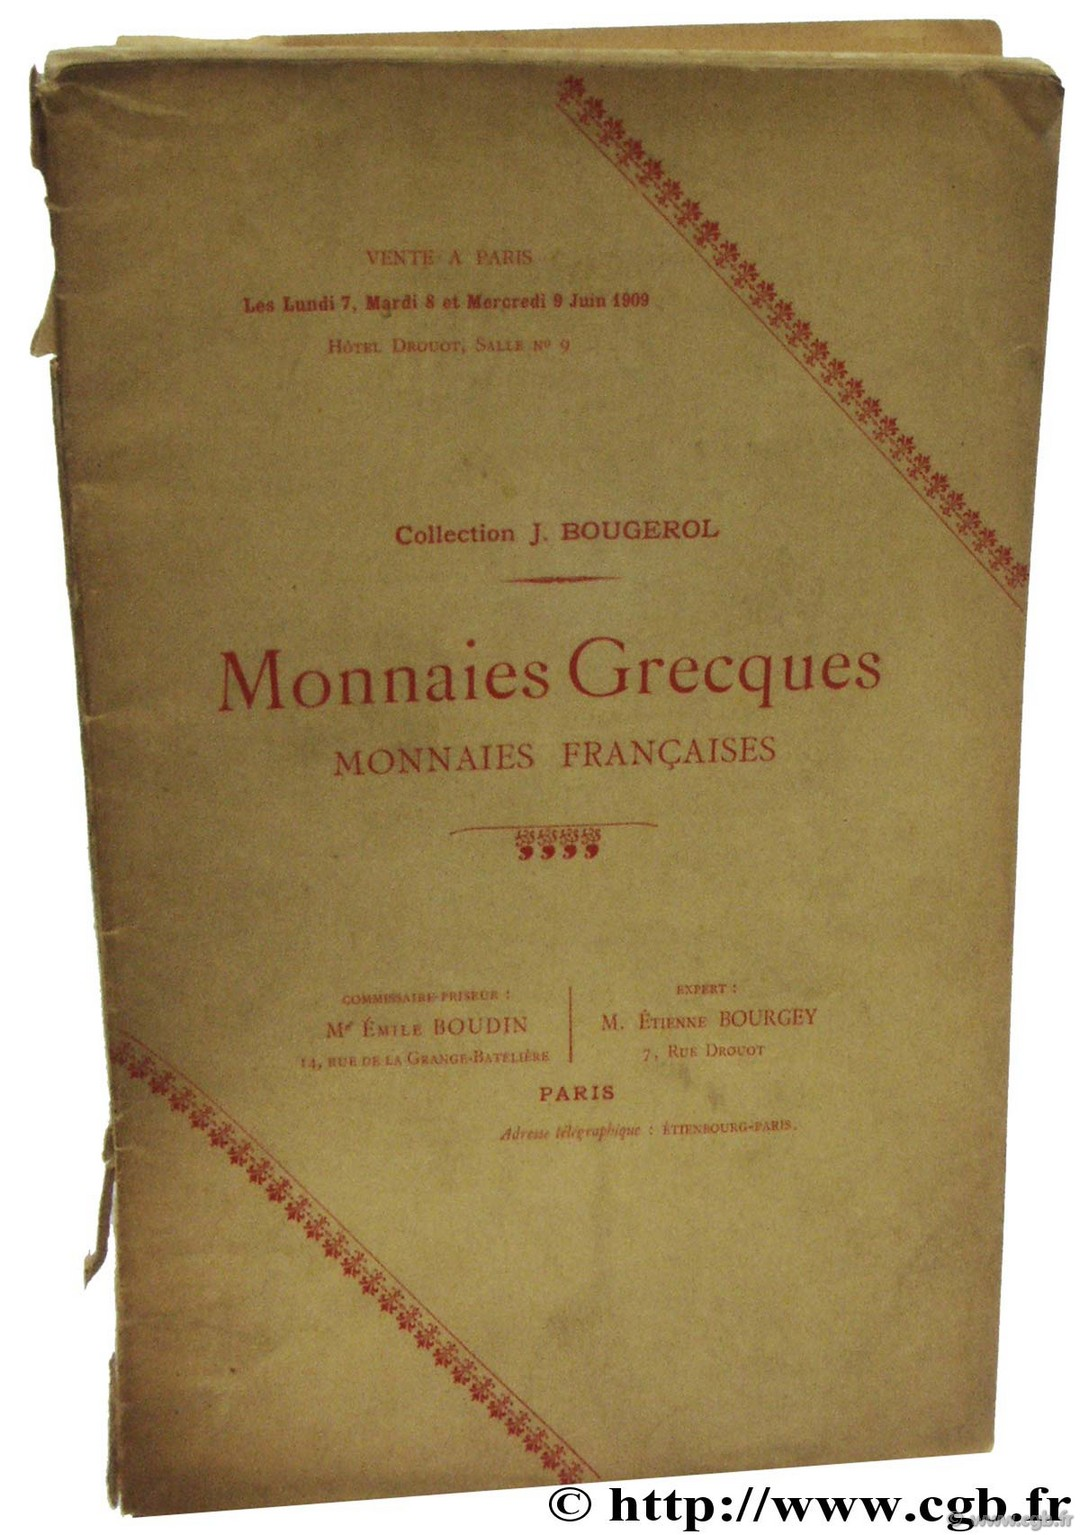 Monnaies grecques - monnaies françaises - collection Bougerol BOURGEY É.